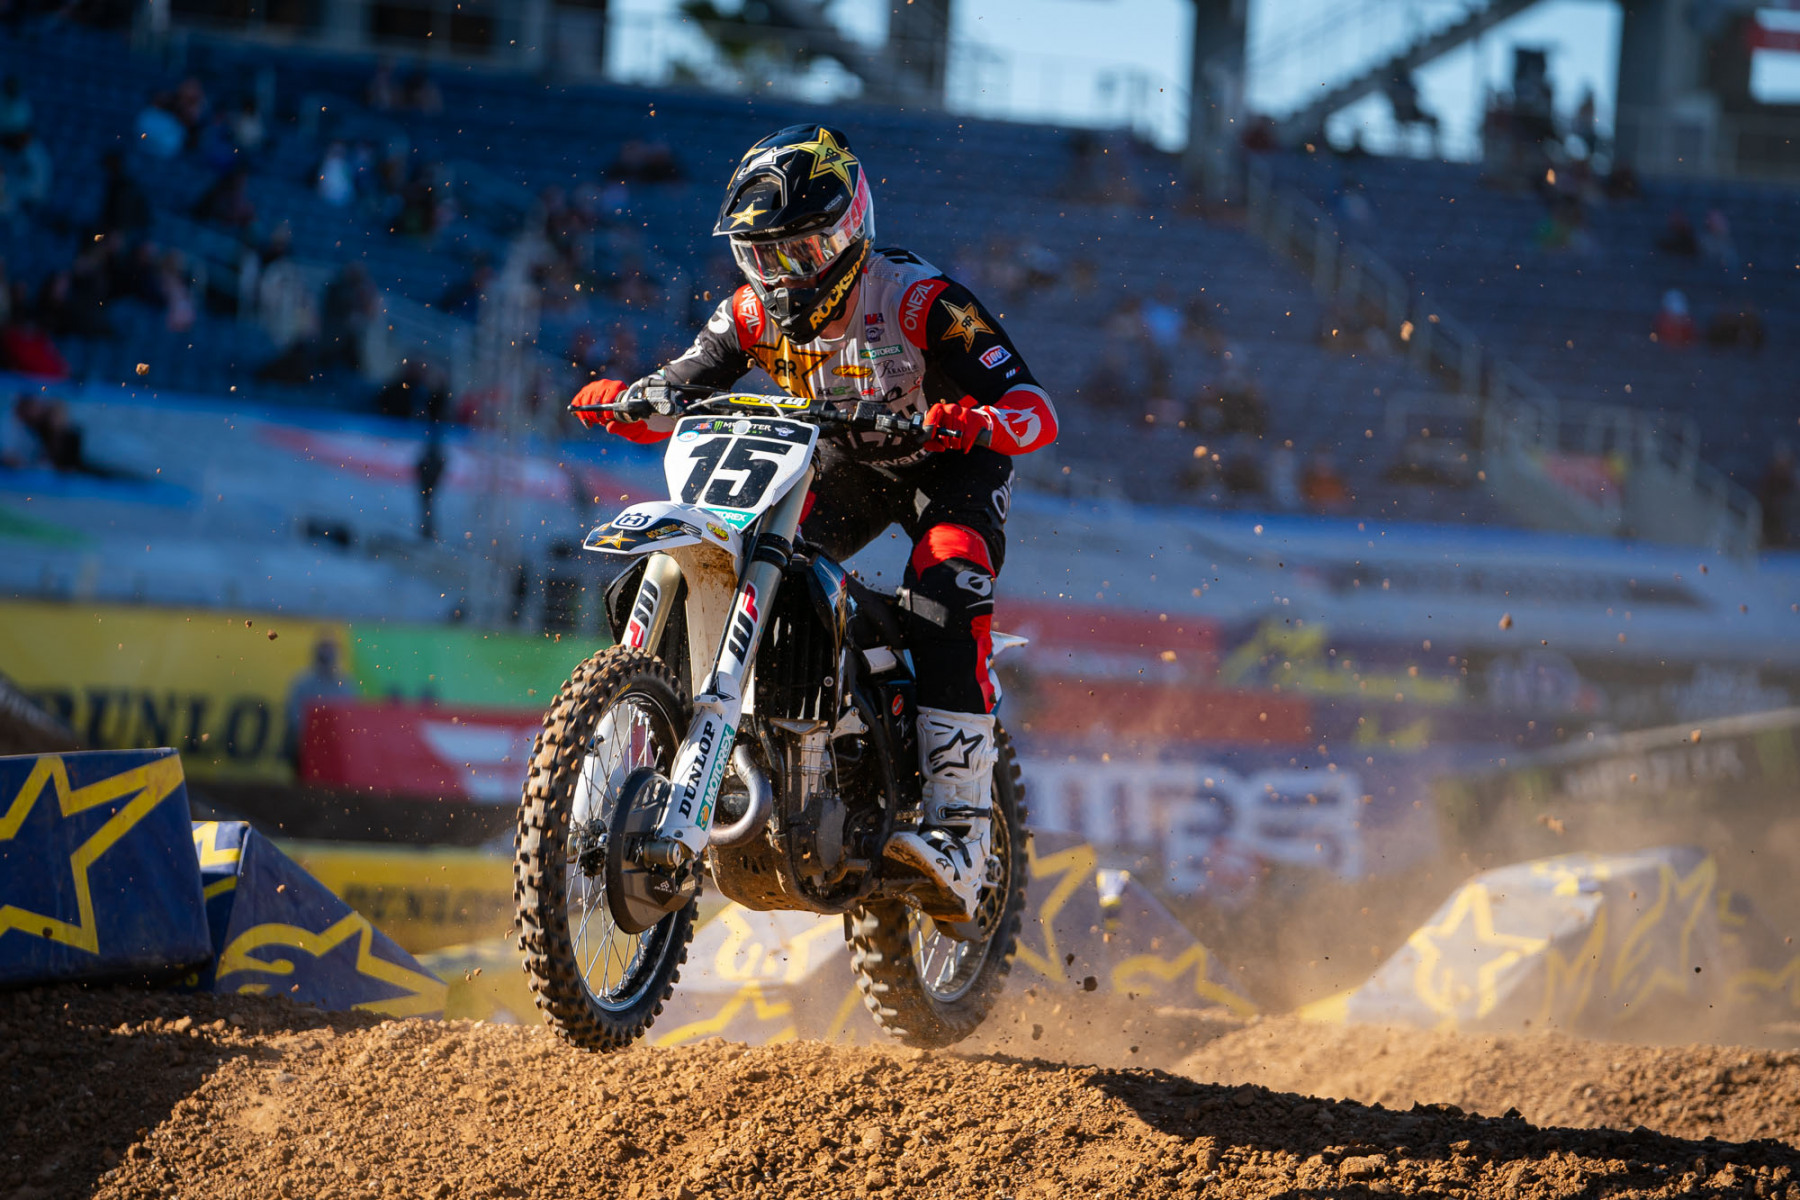 2021-ORLANDO-TWO-SUPERCROSS_KICKSTART_1517